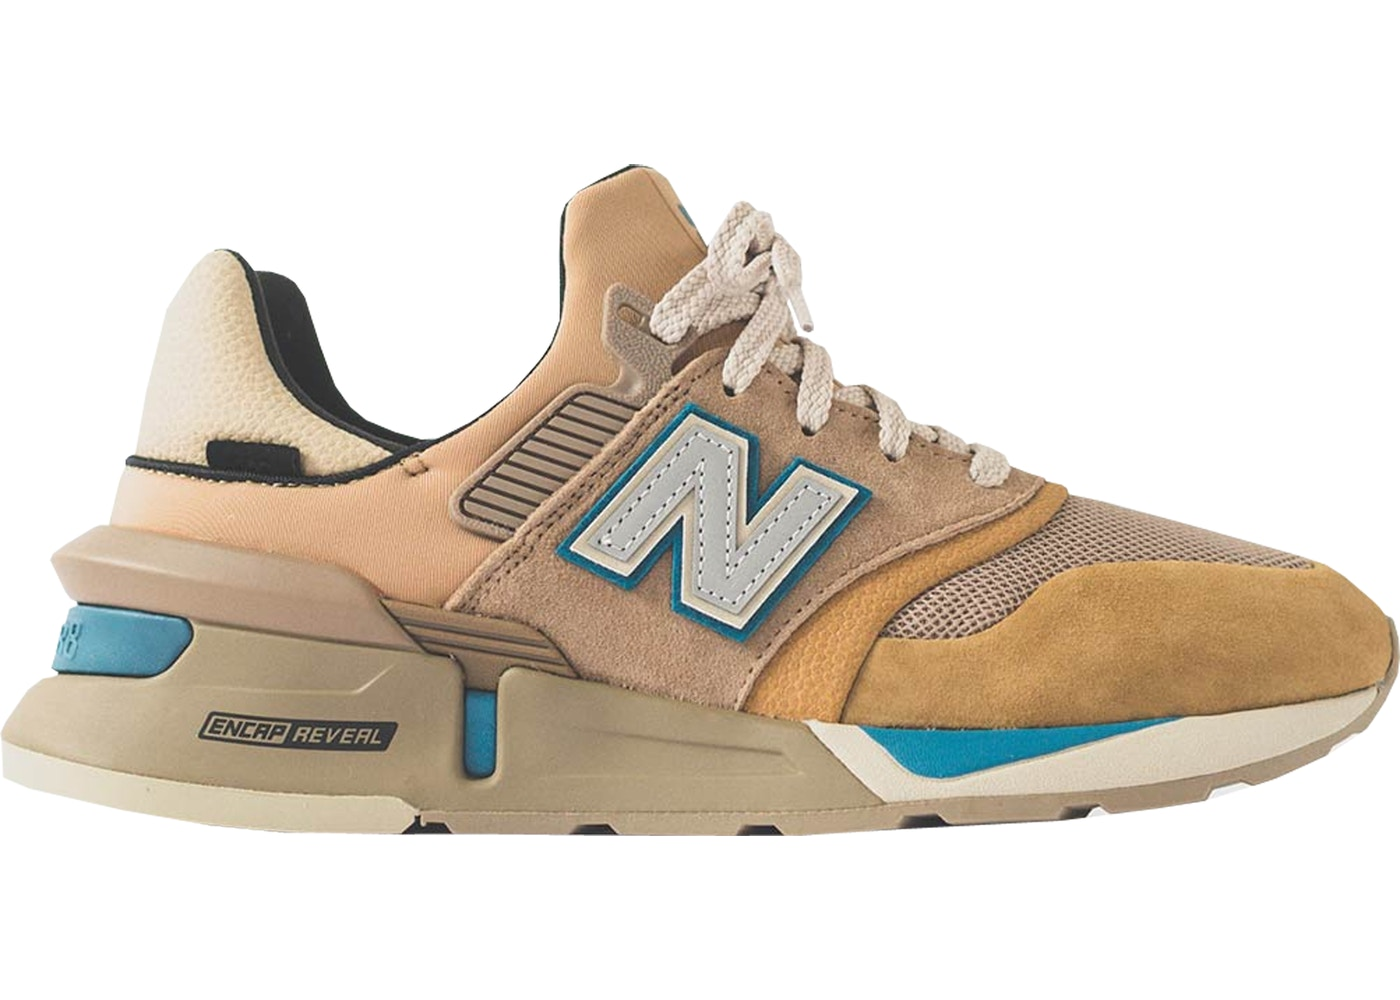 83759633ea905 New Balance Size 7.5 Shoes - Featured